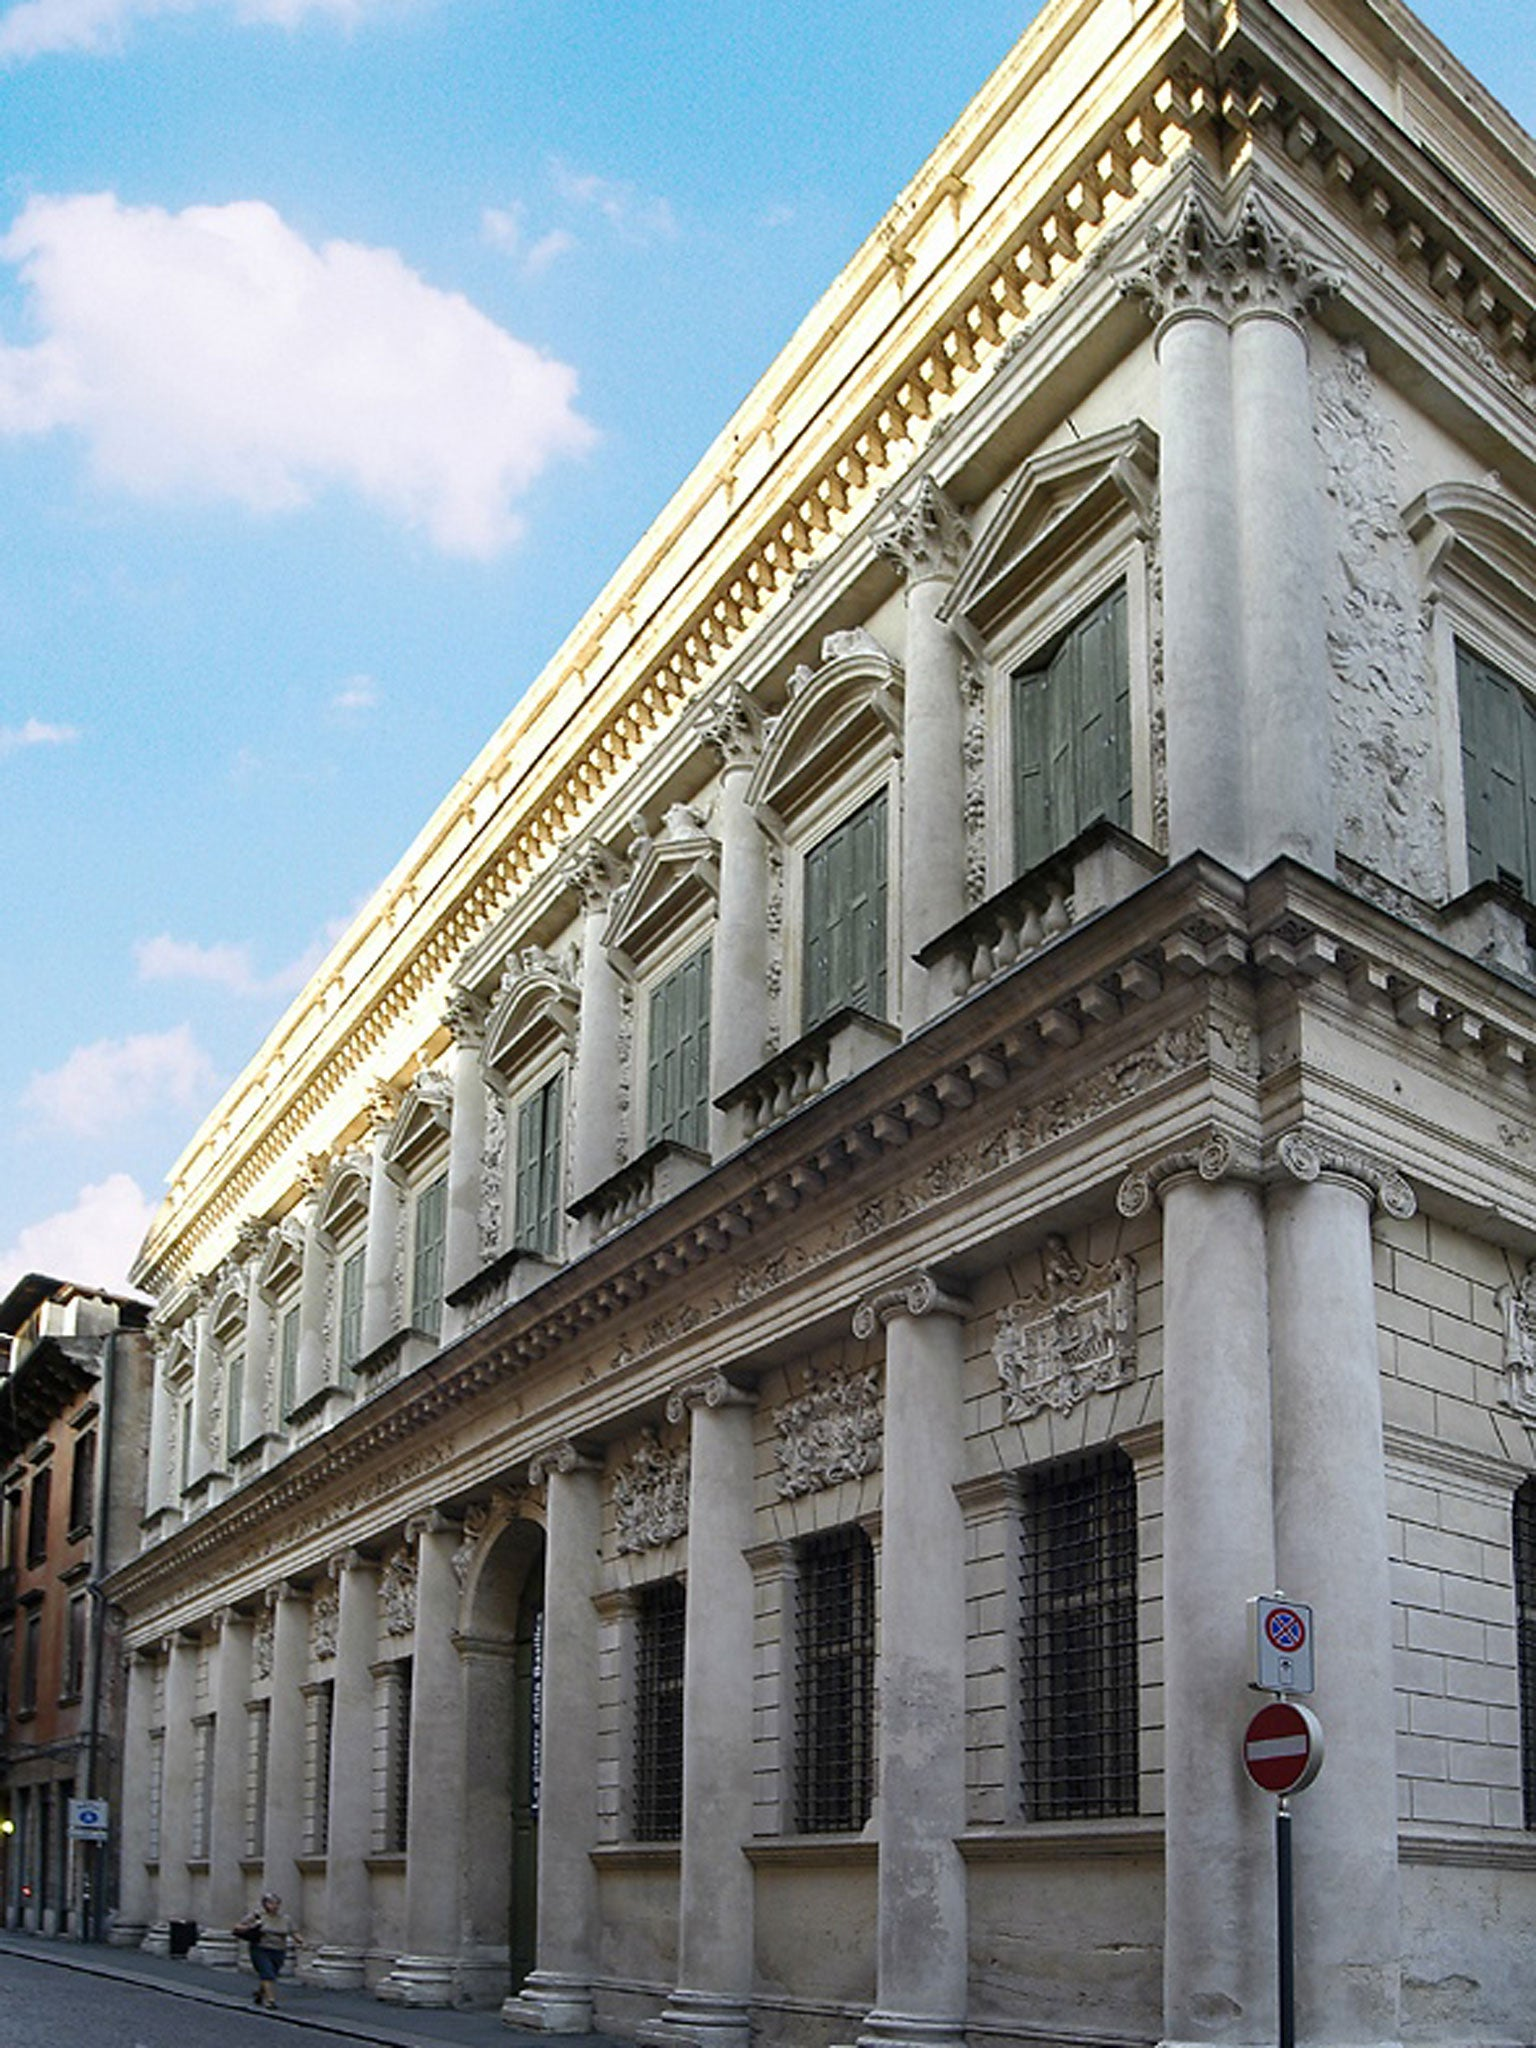 Slice of the city vicenza a trove of architectural treasures slice of the city vicenza a trove of architectural treasures the independent fandeluxe Image collections